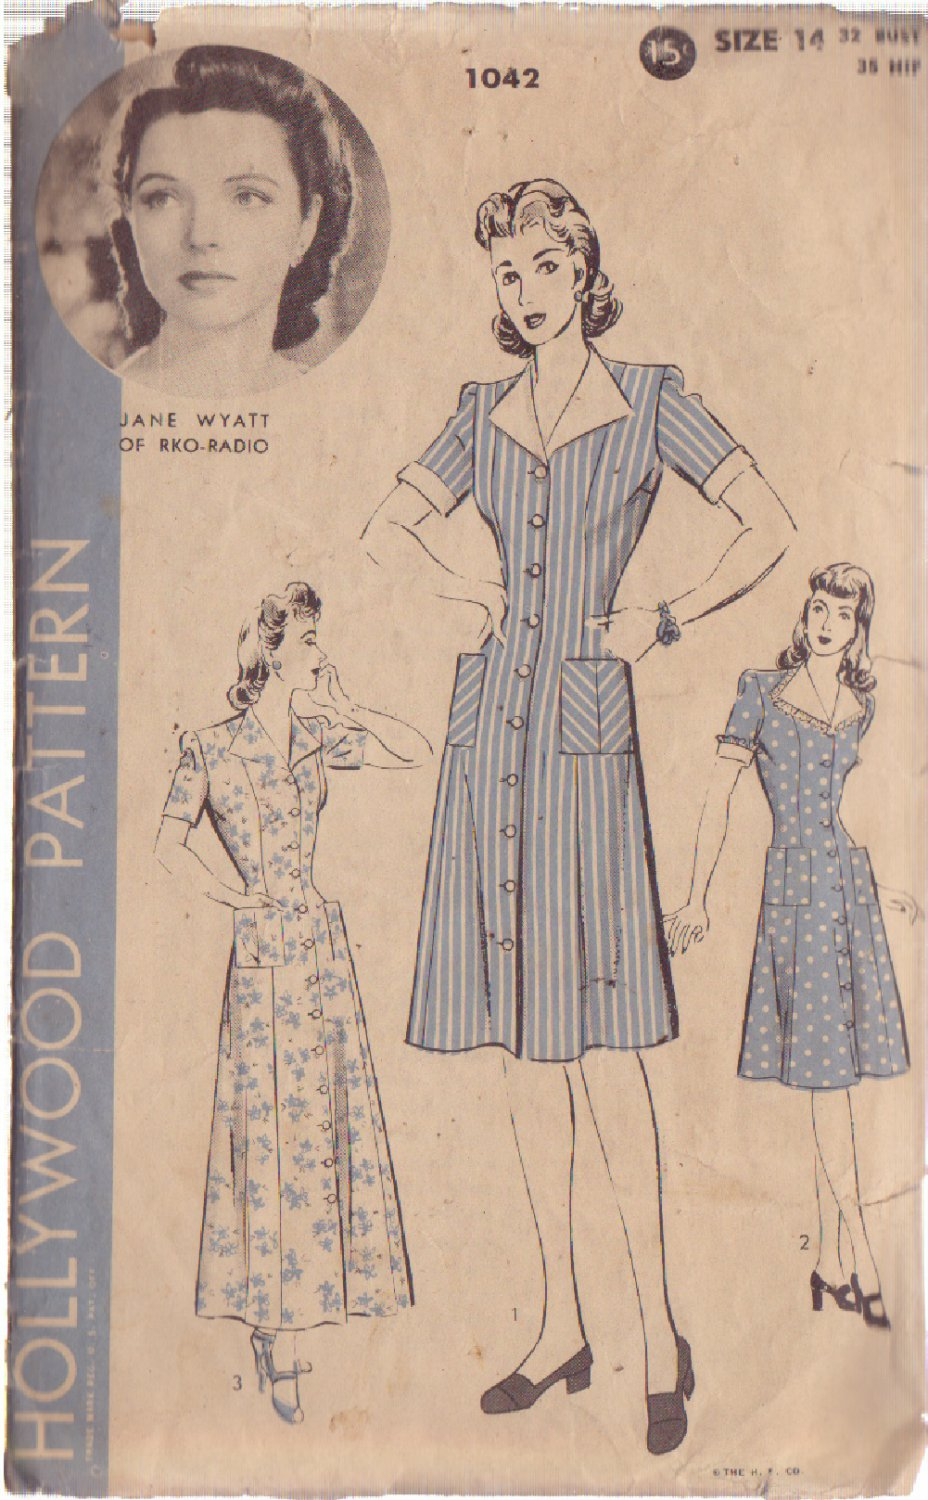 HOLLYWOOD PATTERN 1042 MISSES' DRESS IN 3 VARIATIONS SIZE 14 JANE WYATT